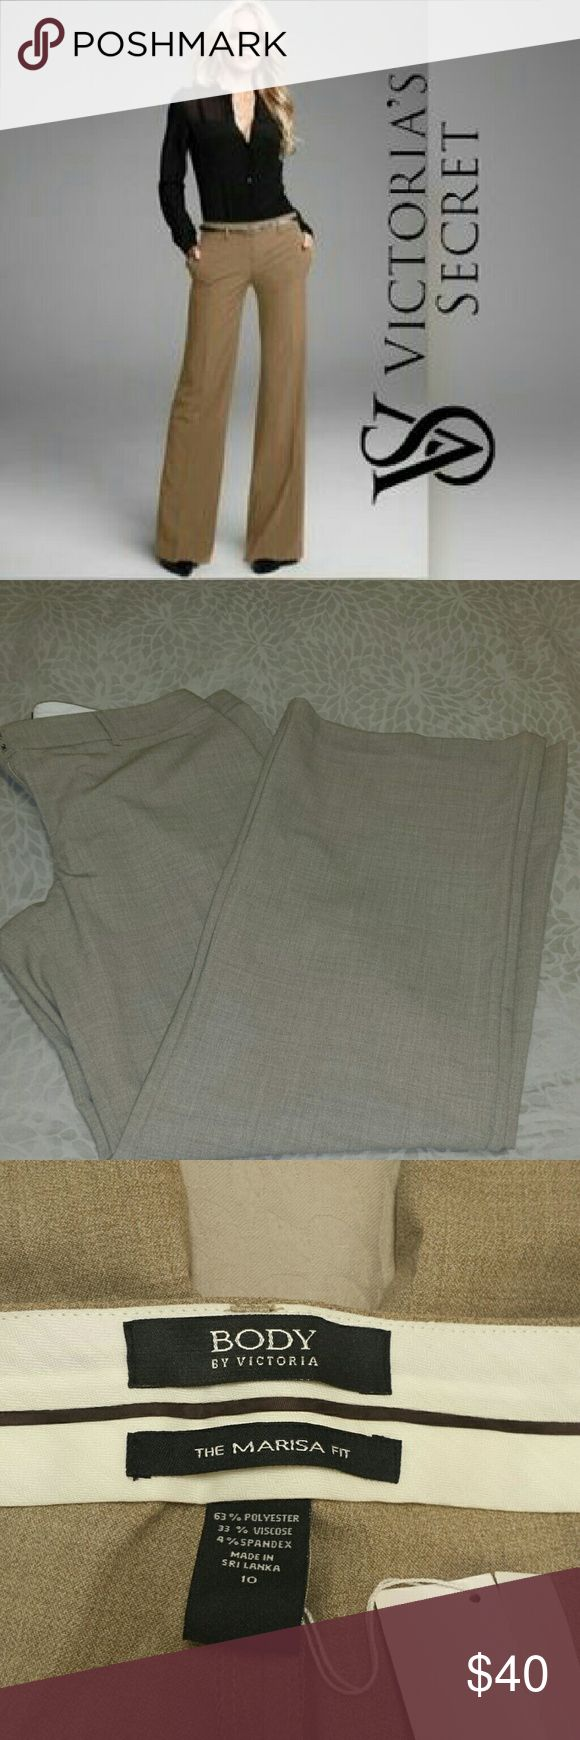 Body by Victoria the Marisa fit dress Slack nwt The Marisa Fit is an elongating pant that gives the illusion of a long & lean leg.? This pant sits slightly below waist & has an easy (relaxed & roomy fit) cut through both the thighs and legs.? This is the perfect pant to wear from the boardroom to cocktail hour with colleagues or friends.  Waist 16 in. across 32 in. inseam 9 ih front rise 15.5 in rear rise 11 in leg opening.  Thave never been worn and are brand new price tag is not still on…